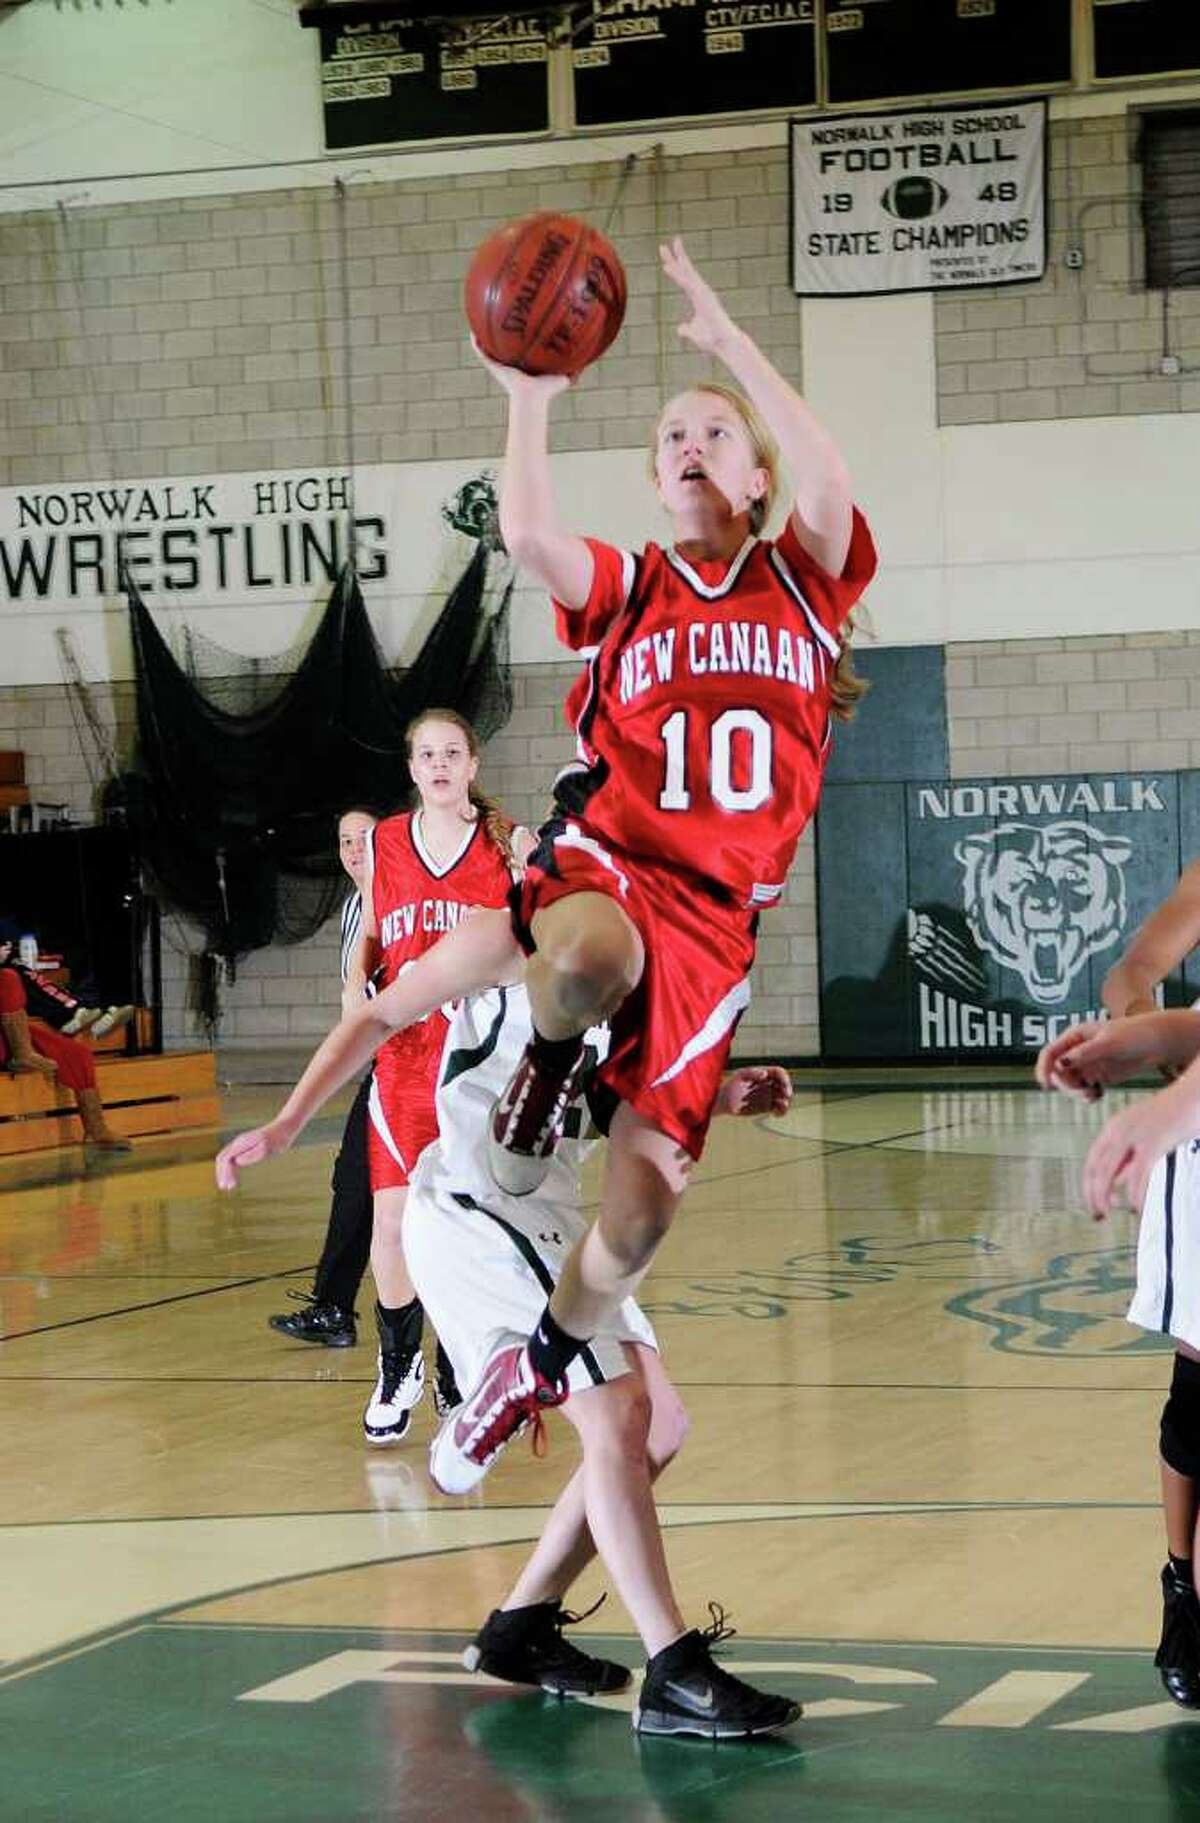 New Canaan's Sarah Mannelly drives to the hoop as Norwalk High School hosts New Canaan High School in Norwalk, CT on Monday January 10, 2011.